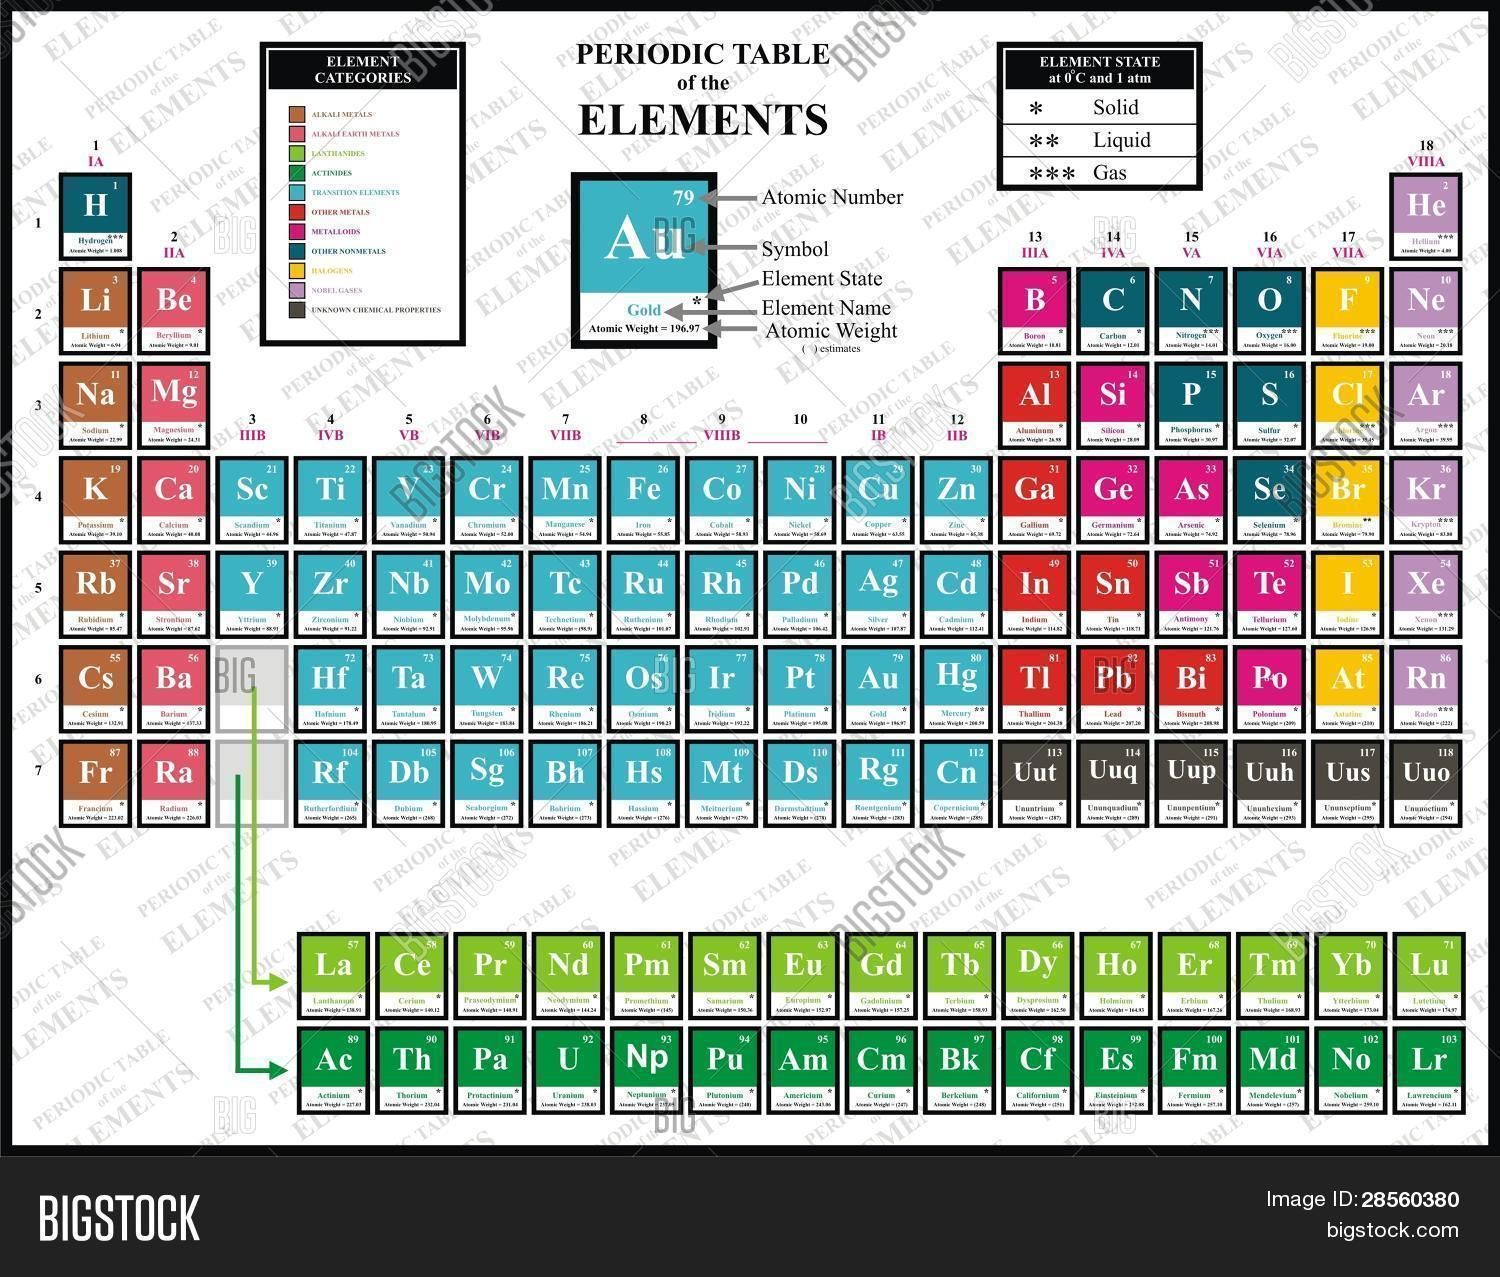 Colorful periodic table chemical image photo bigstock colorful periodic table of the chemical elements including element name atomic number atomic urtaz Images